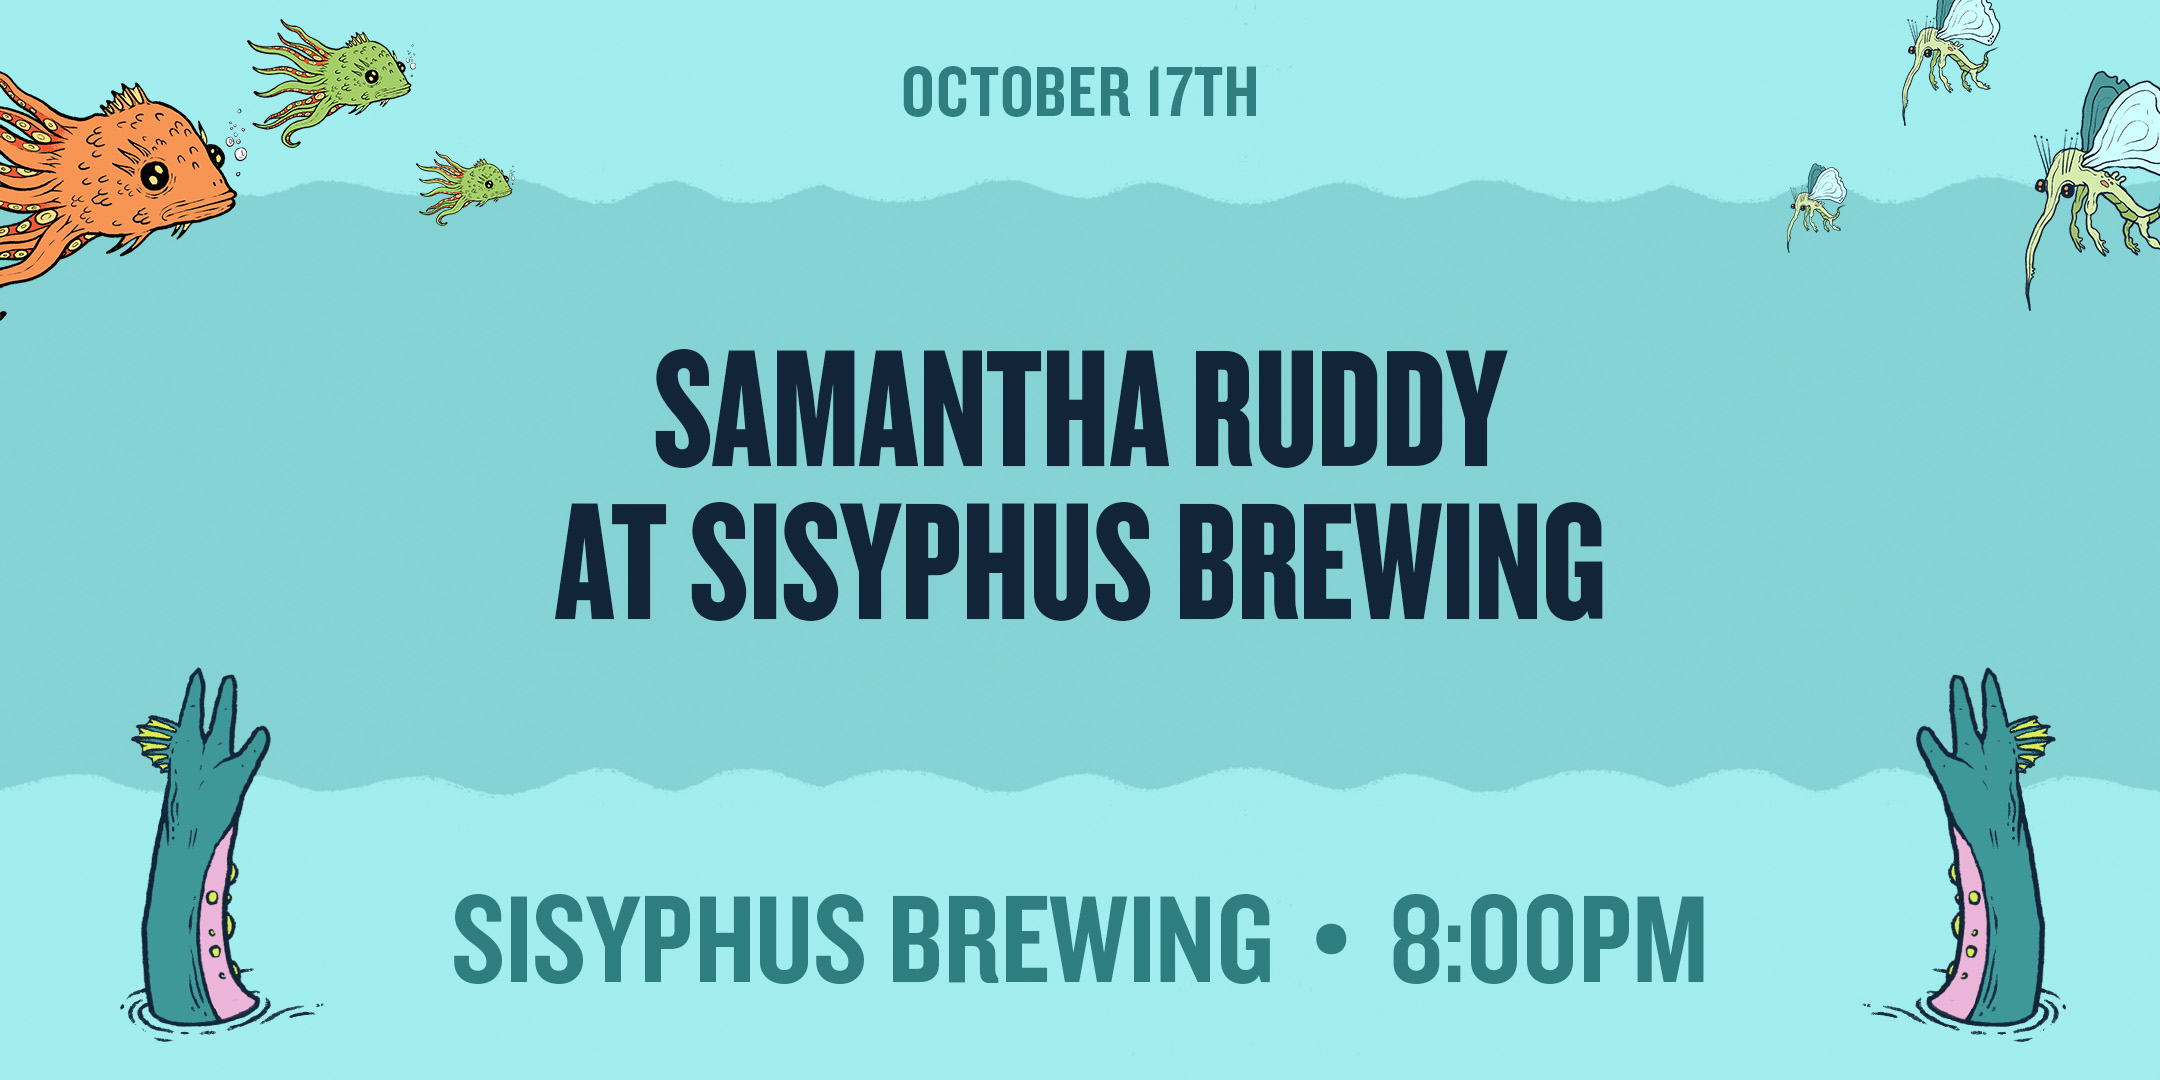 OCT17-Samantha Ruddy at Sisyphus Brewing.jpg